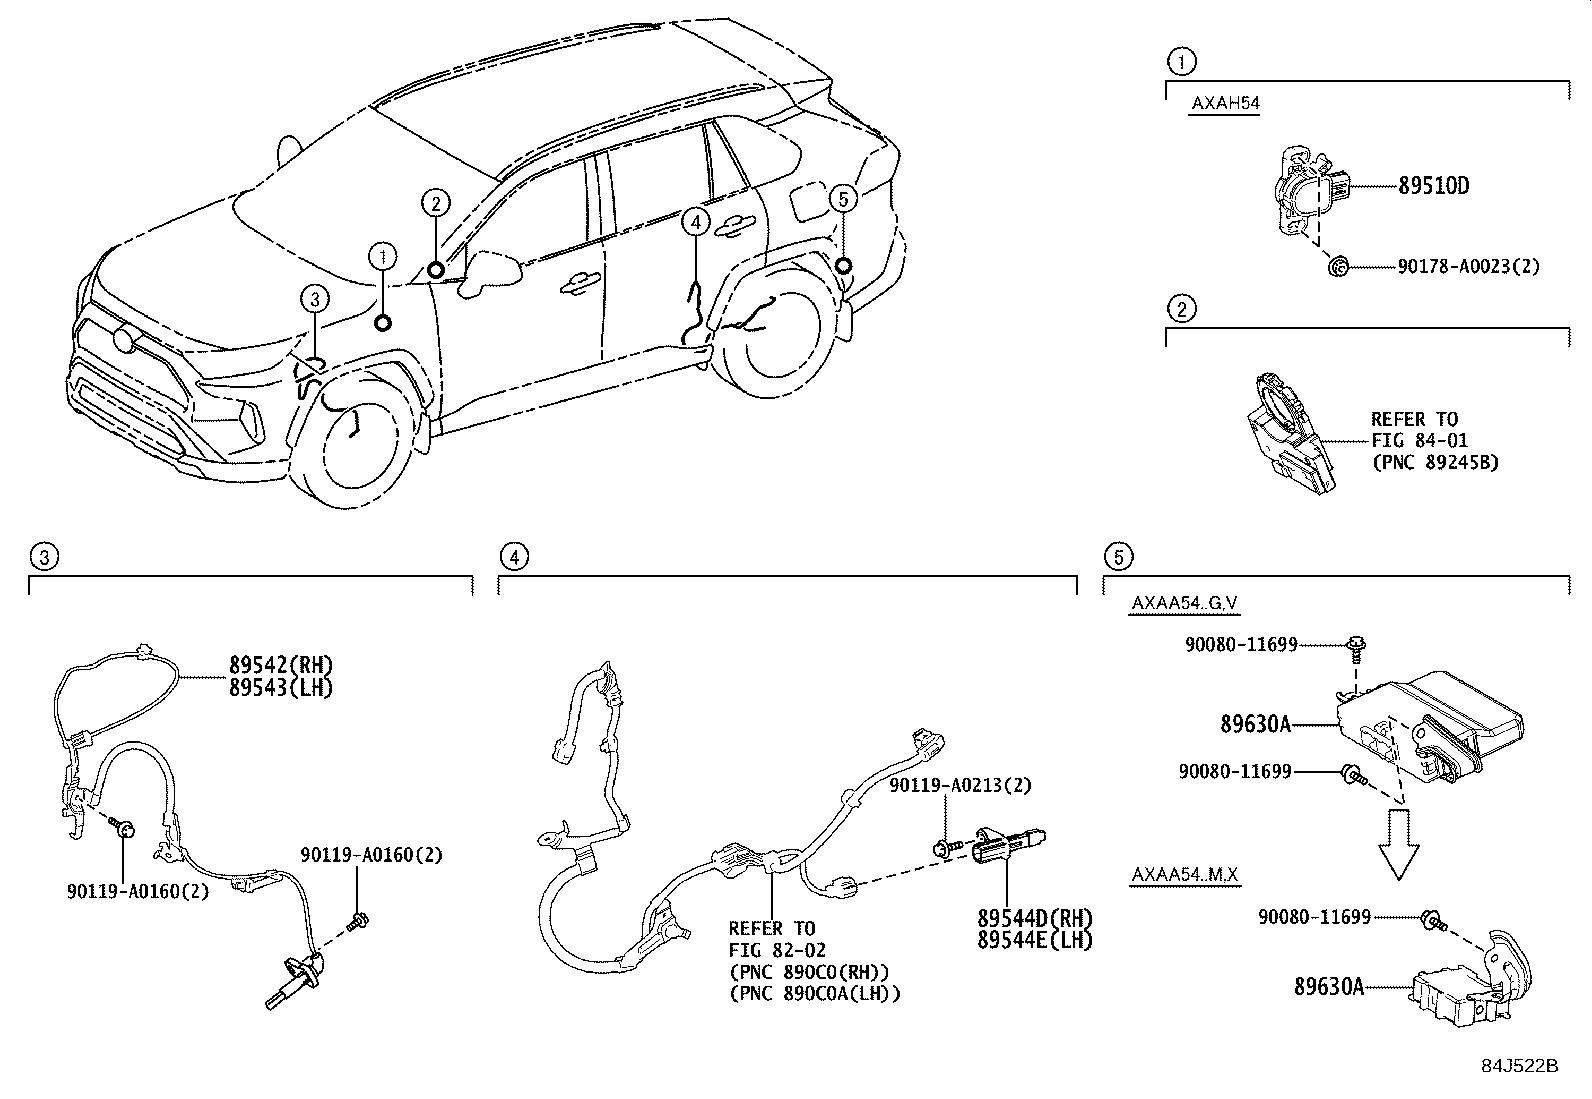 Toyota Rav4 Computer Assembly 4wd Electrical Vsc Abs